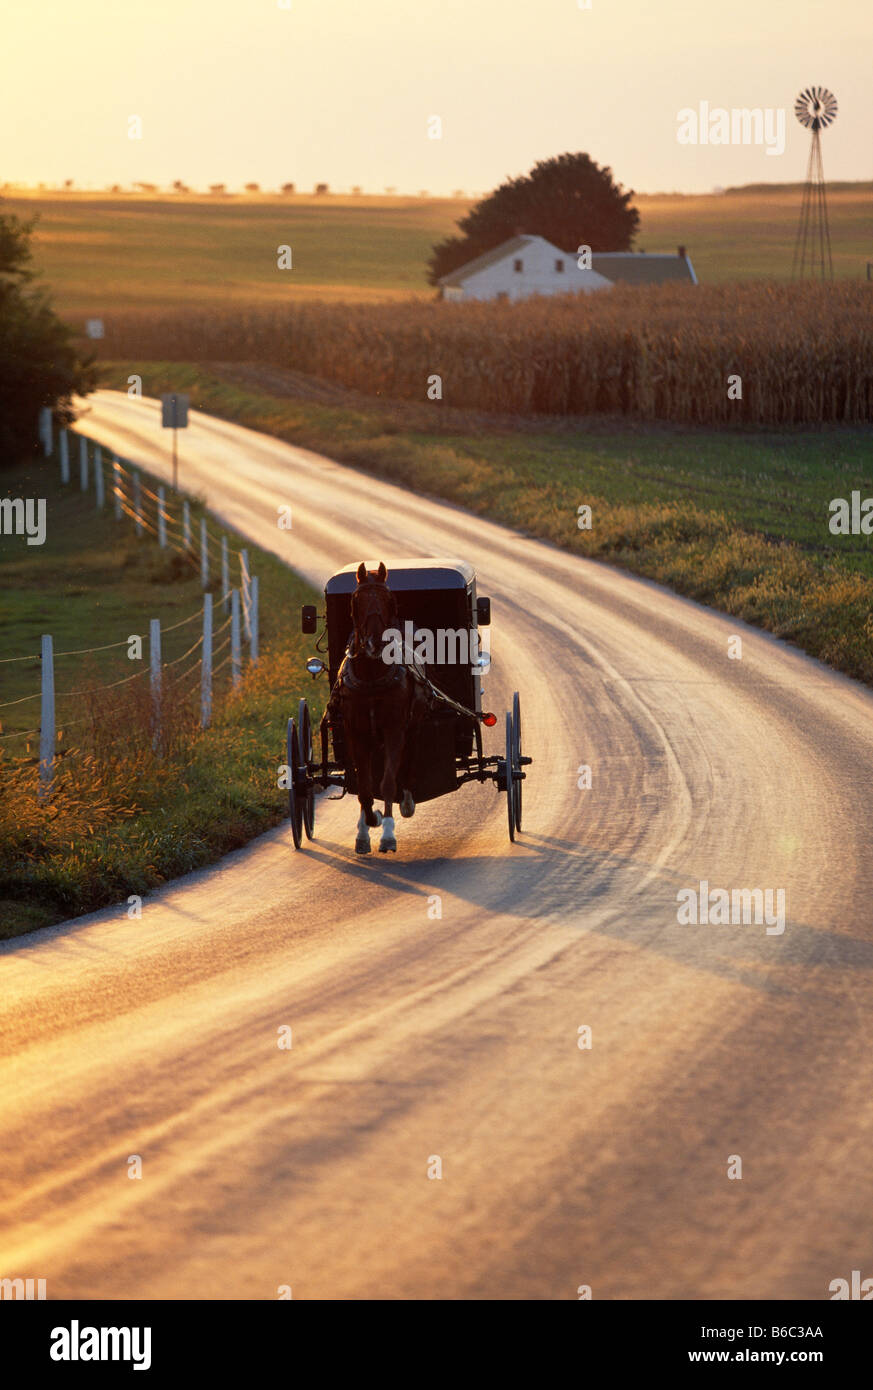 Amish horse drawn buggy on a rural road, Lancaster County, Pennsylvania, USA - Stock Image